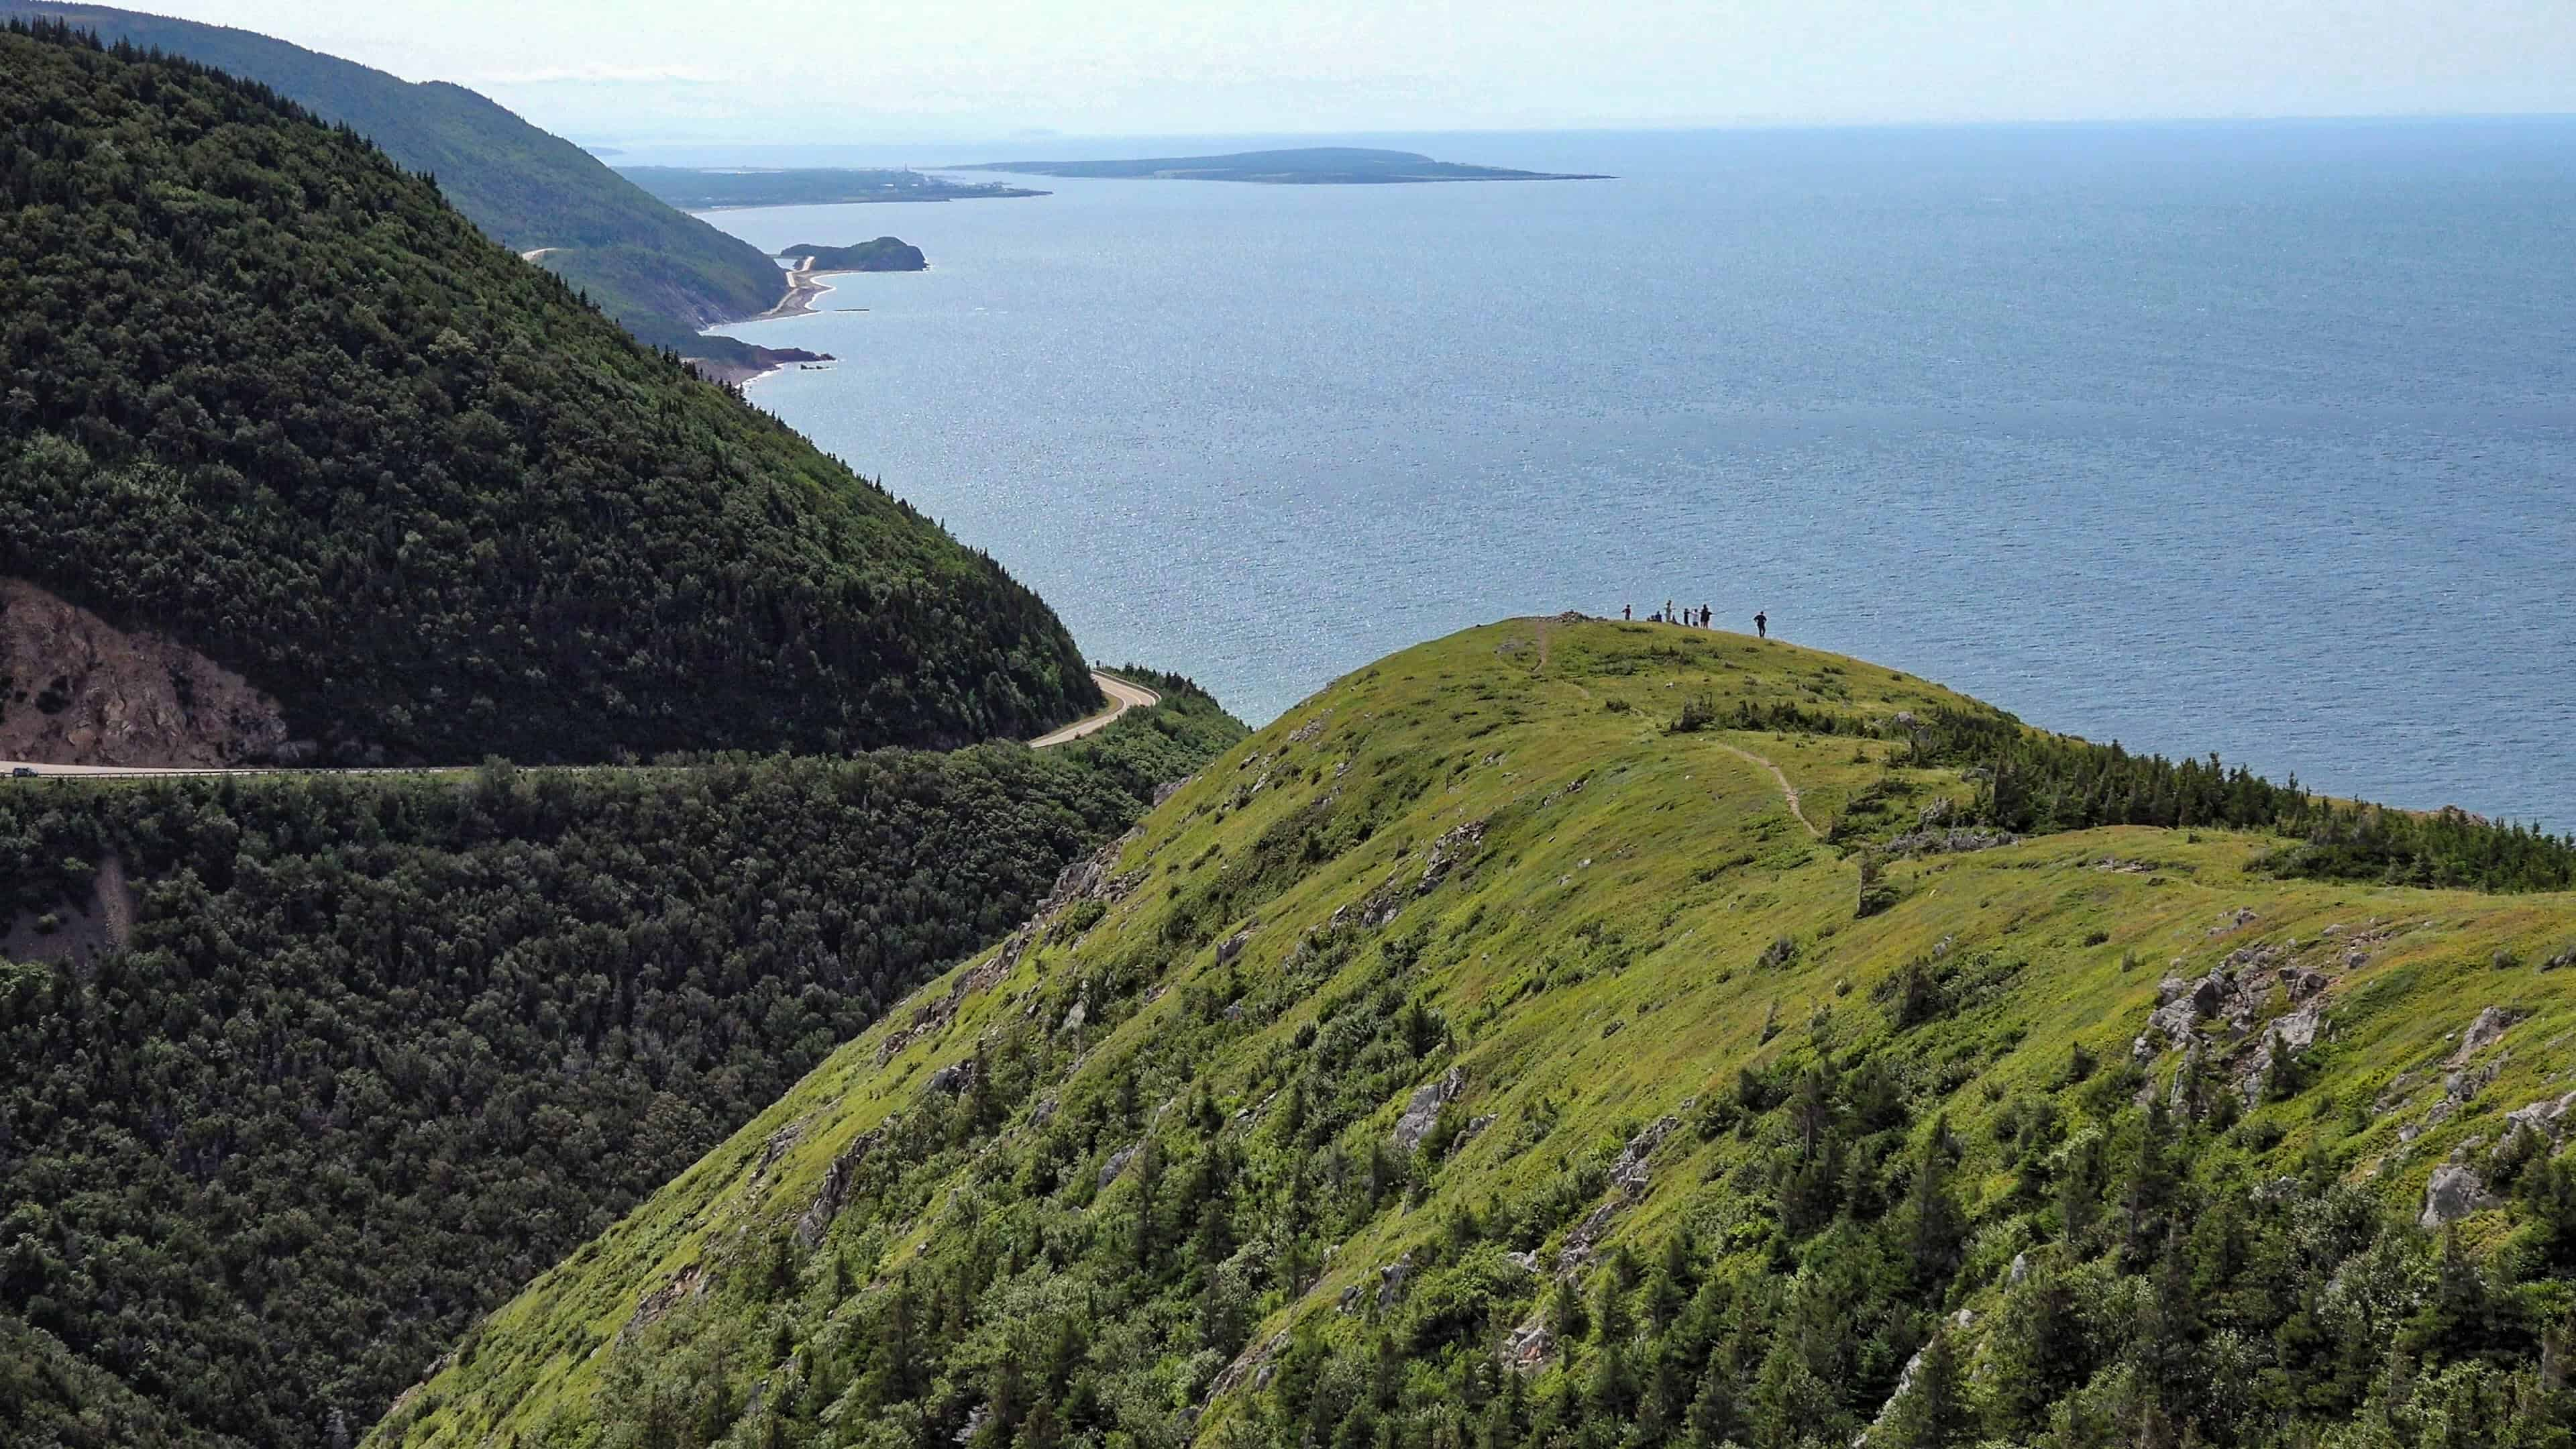 Cape Breton Highlands National Park - Most Breathtaking National Parks in Canada